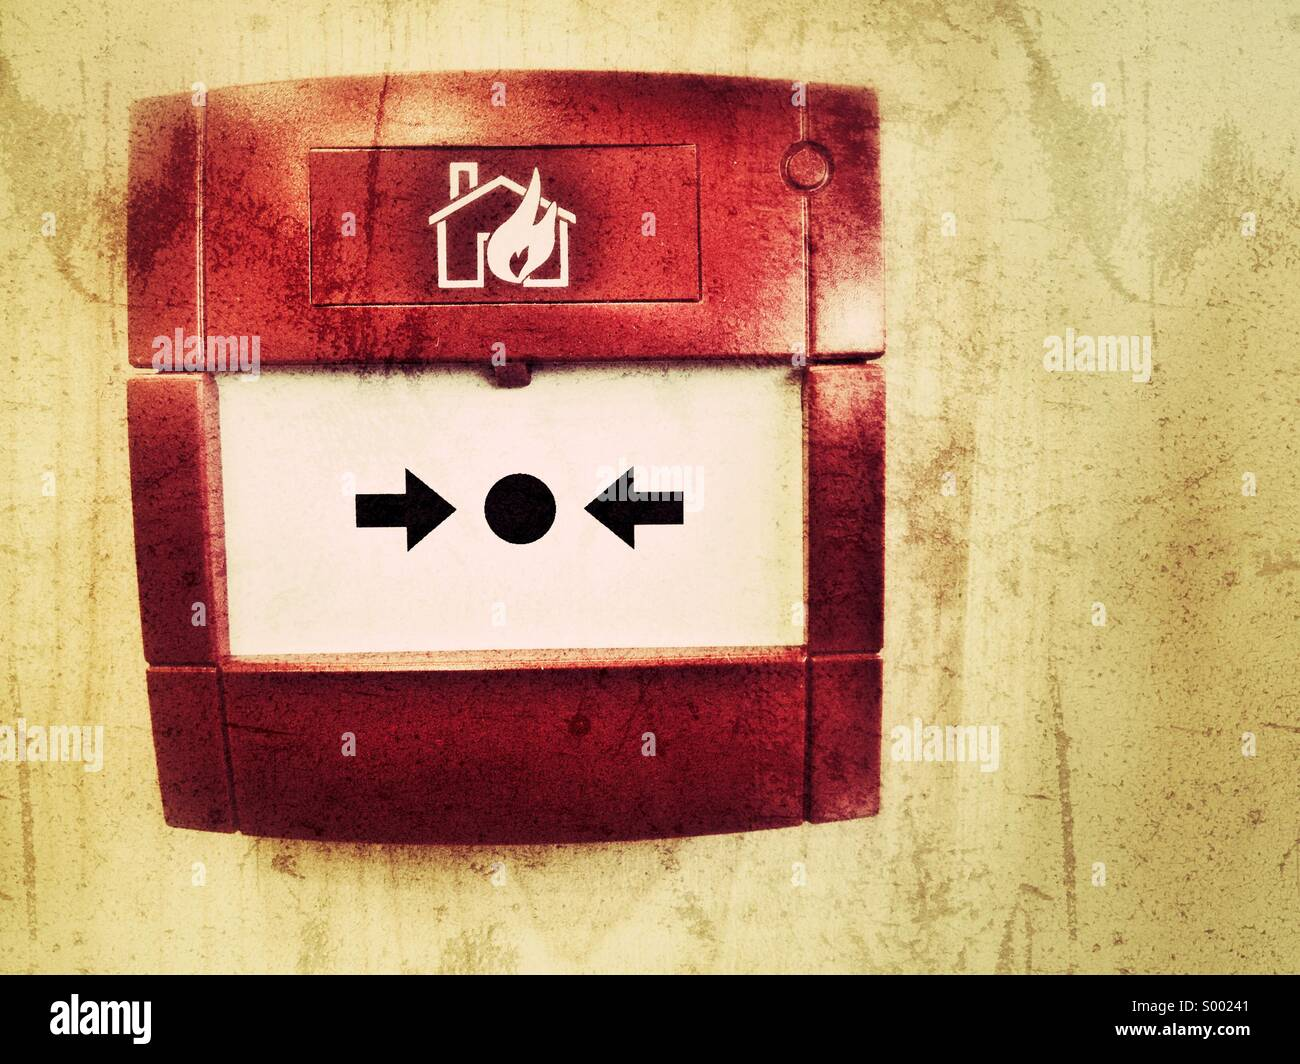 Fire alarm - Stock Image